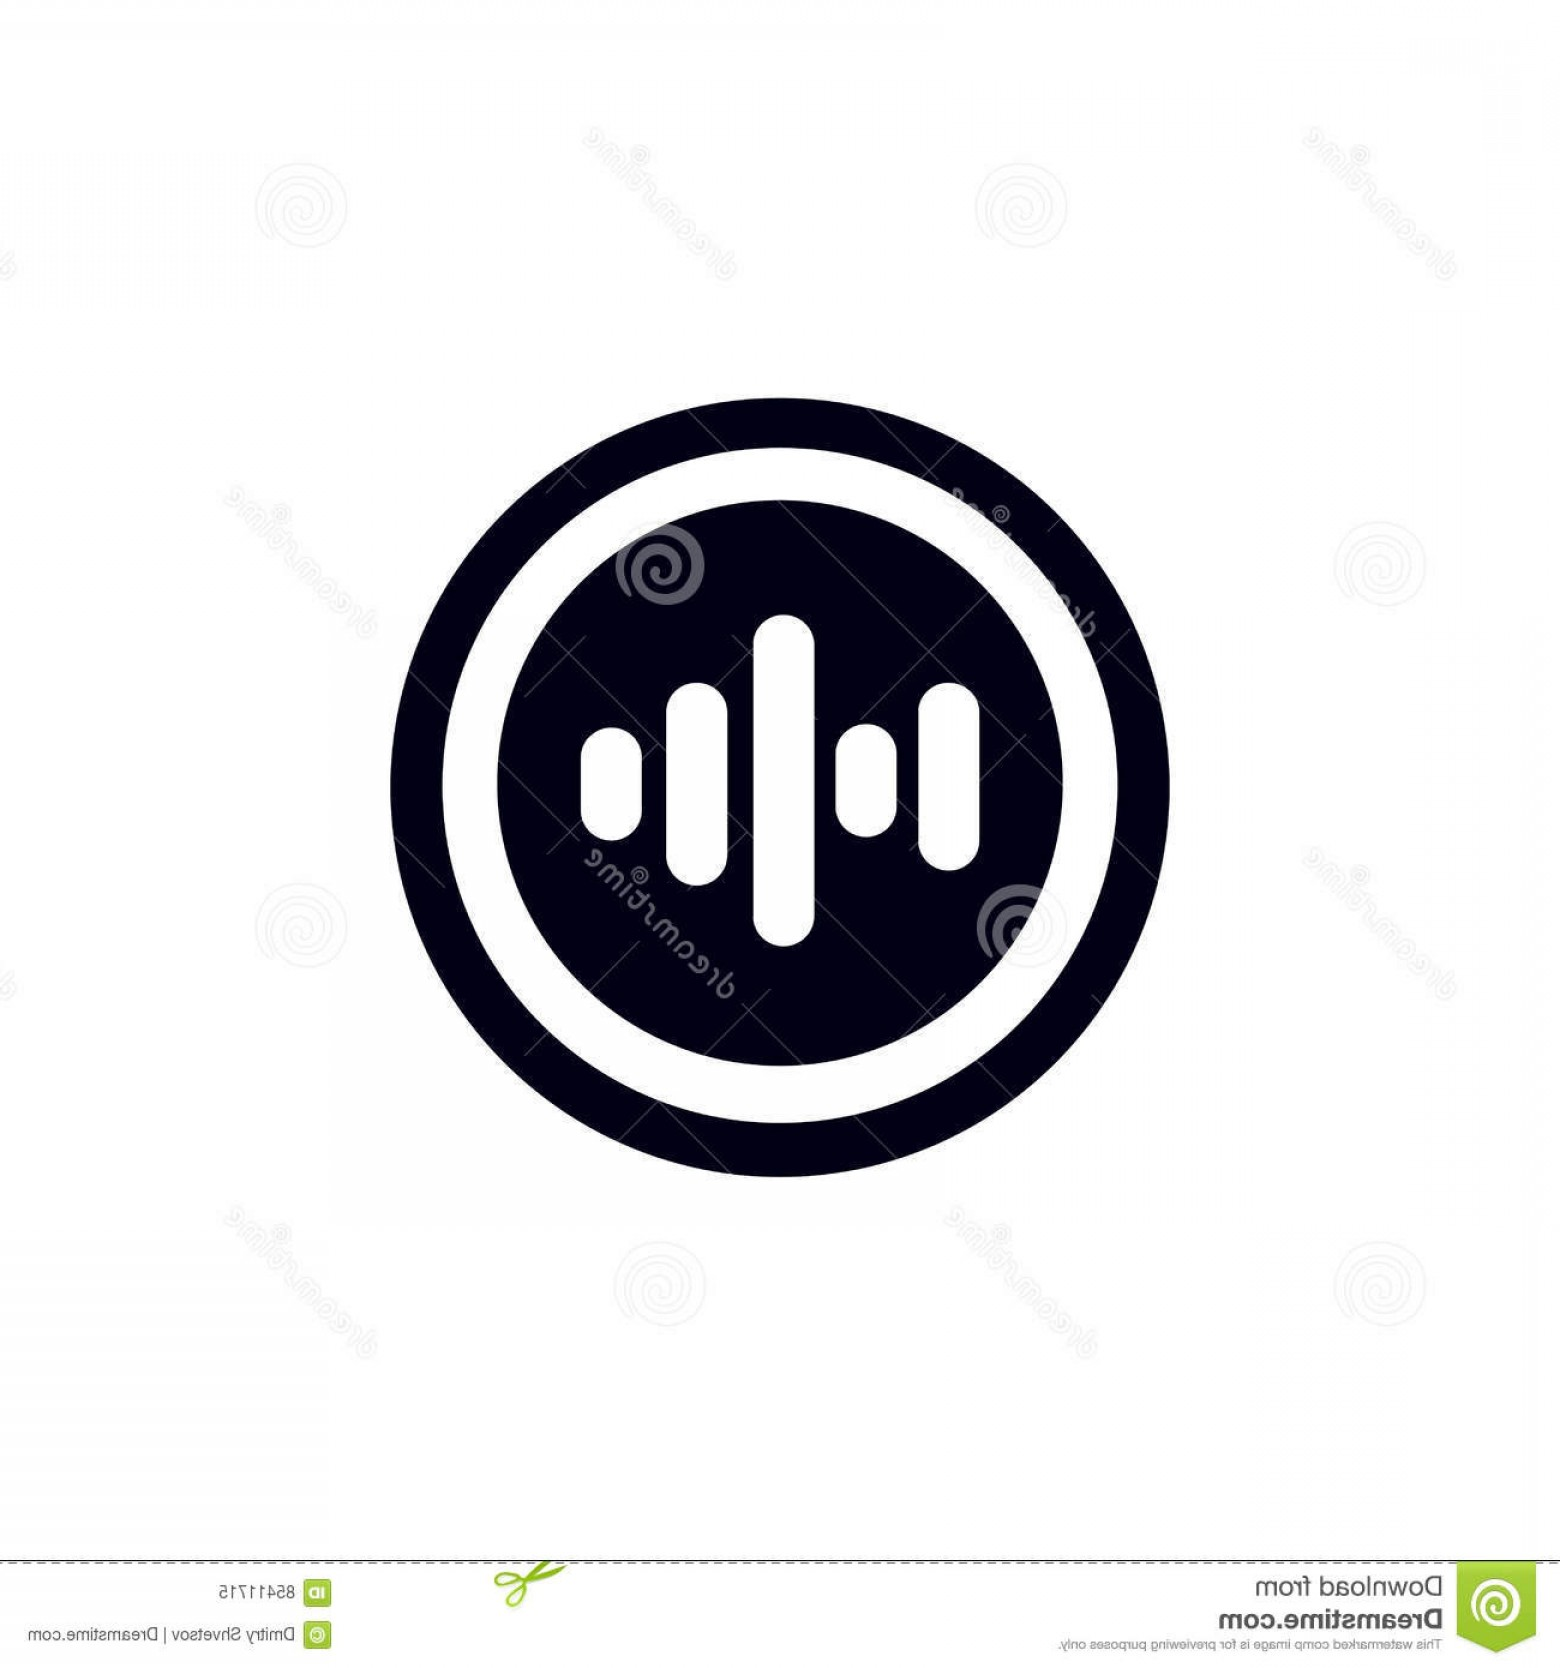 Volume Button Vector: Stock Illustration Clean Music Volume Button Vector Design Image